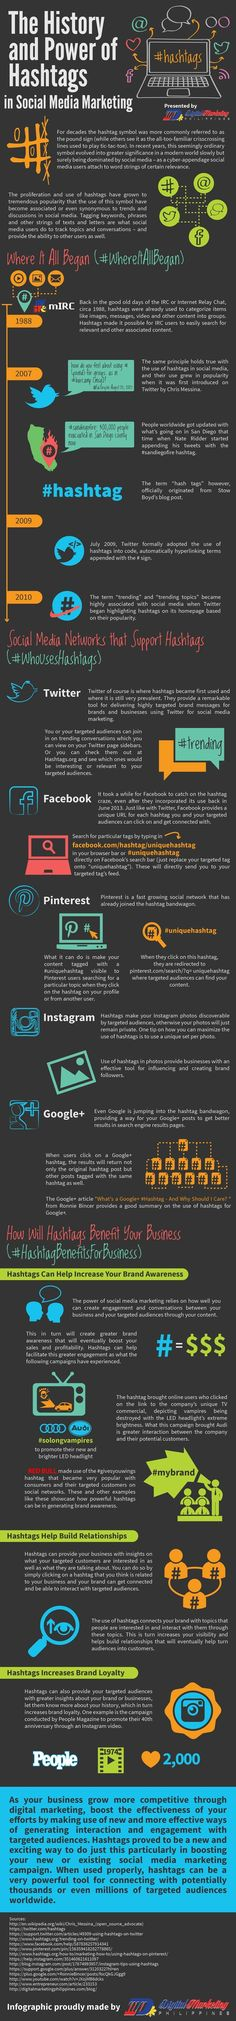 Interesting....  -- Cosa ne sarebbe stato dell'hashtag se non avesse incontrato Twitter? Forse un cancelletto triste e solitario... #perdire http://www.pinterest.com/intelisystems  #RePin by AT Social Media Marketing - Pinterest Marketing Specialists ATSocialMedia.co.uk  #RePin by AT Social Media Marketing - Pinterest Marketing Specialists ATSocialMedia.co.uk